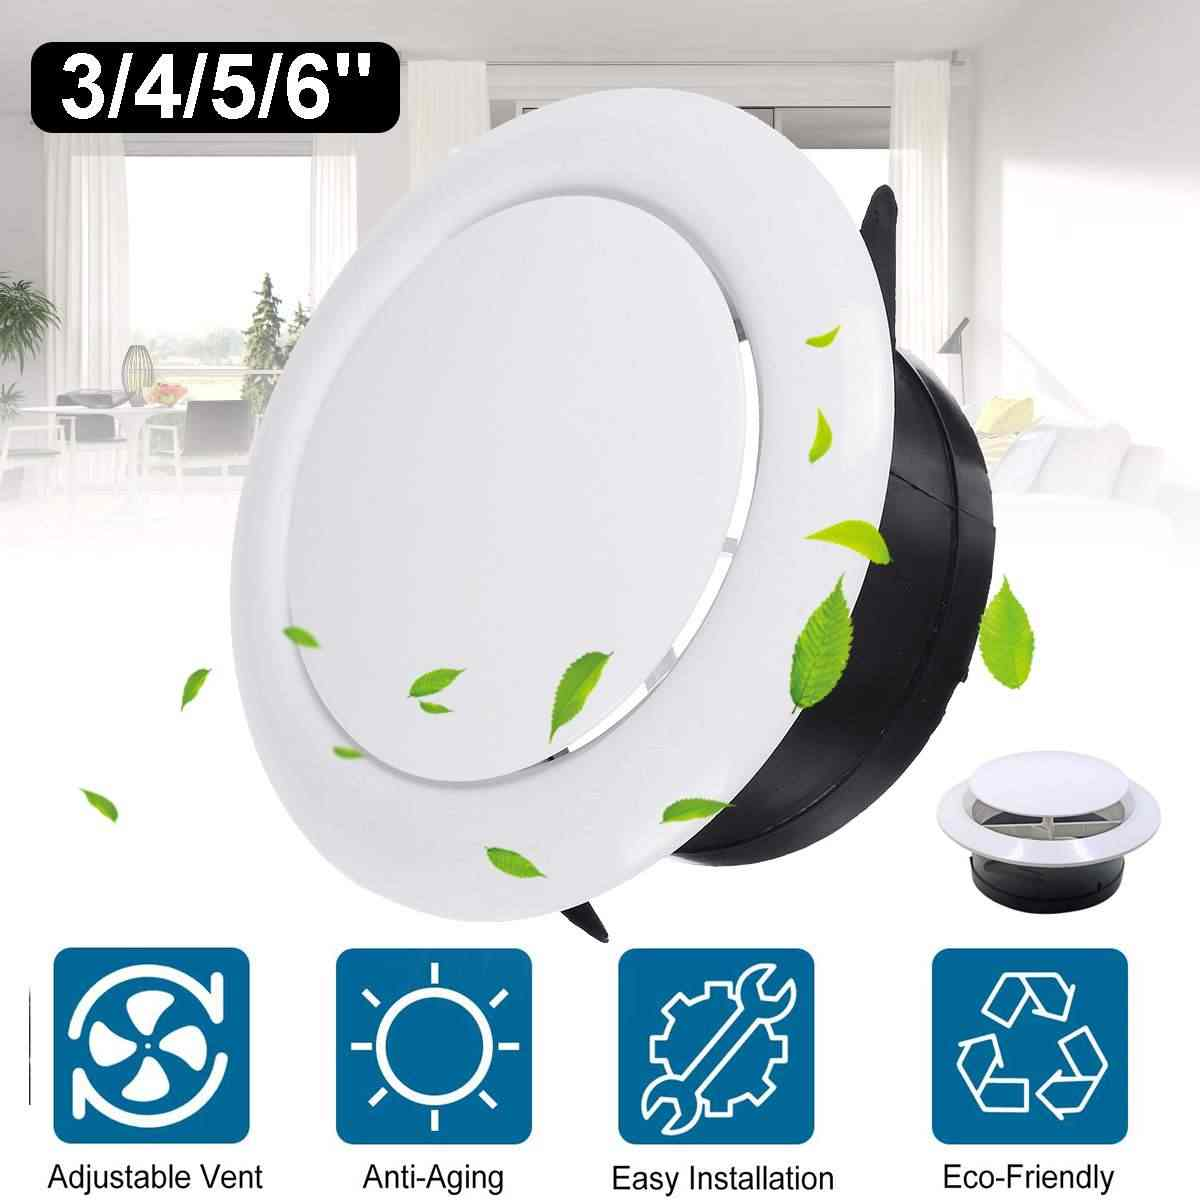 Adjustable Air Ventilation Cover Round Ducting Ceiling Wall Hole Abs Air Vent Grille Louver Kitchen Bath Air Outlet Fresh System Vents Aliexpress